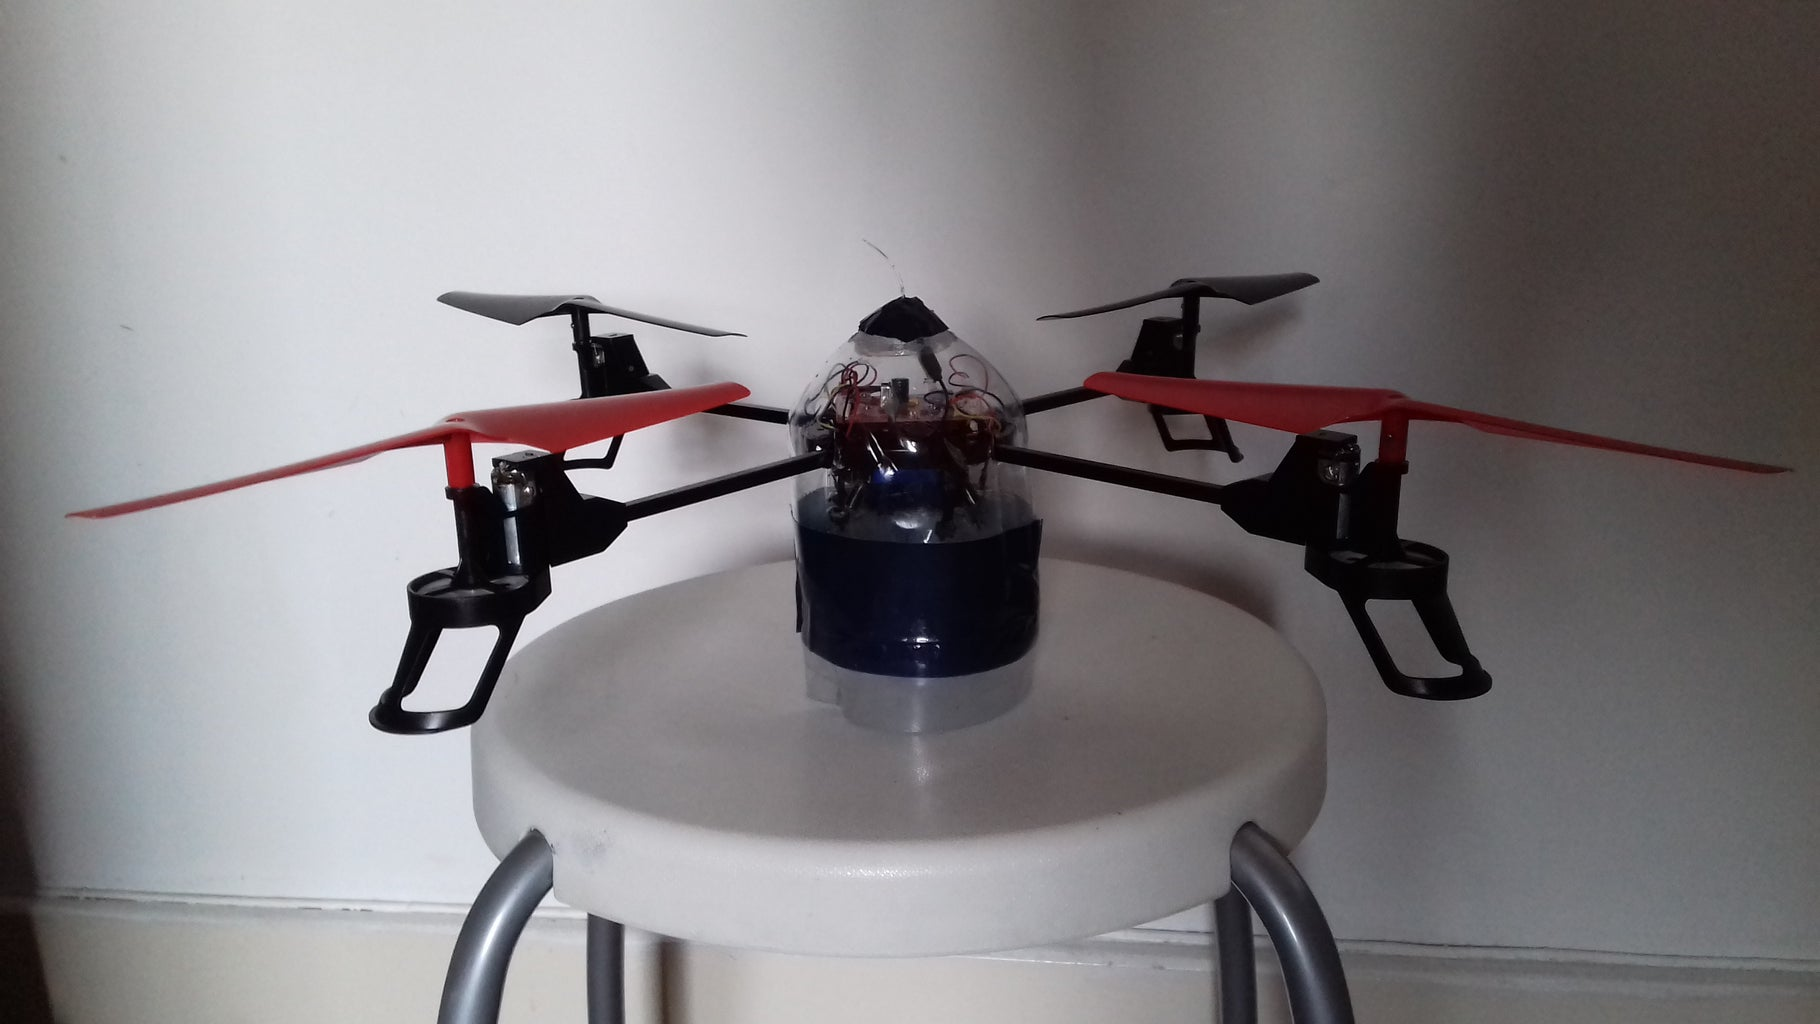 Fitting the Quadcopter Inside the Water Bottle.